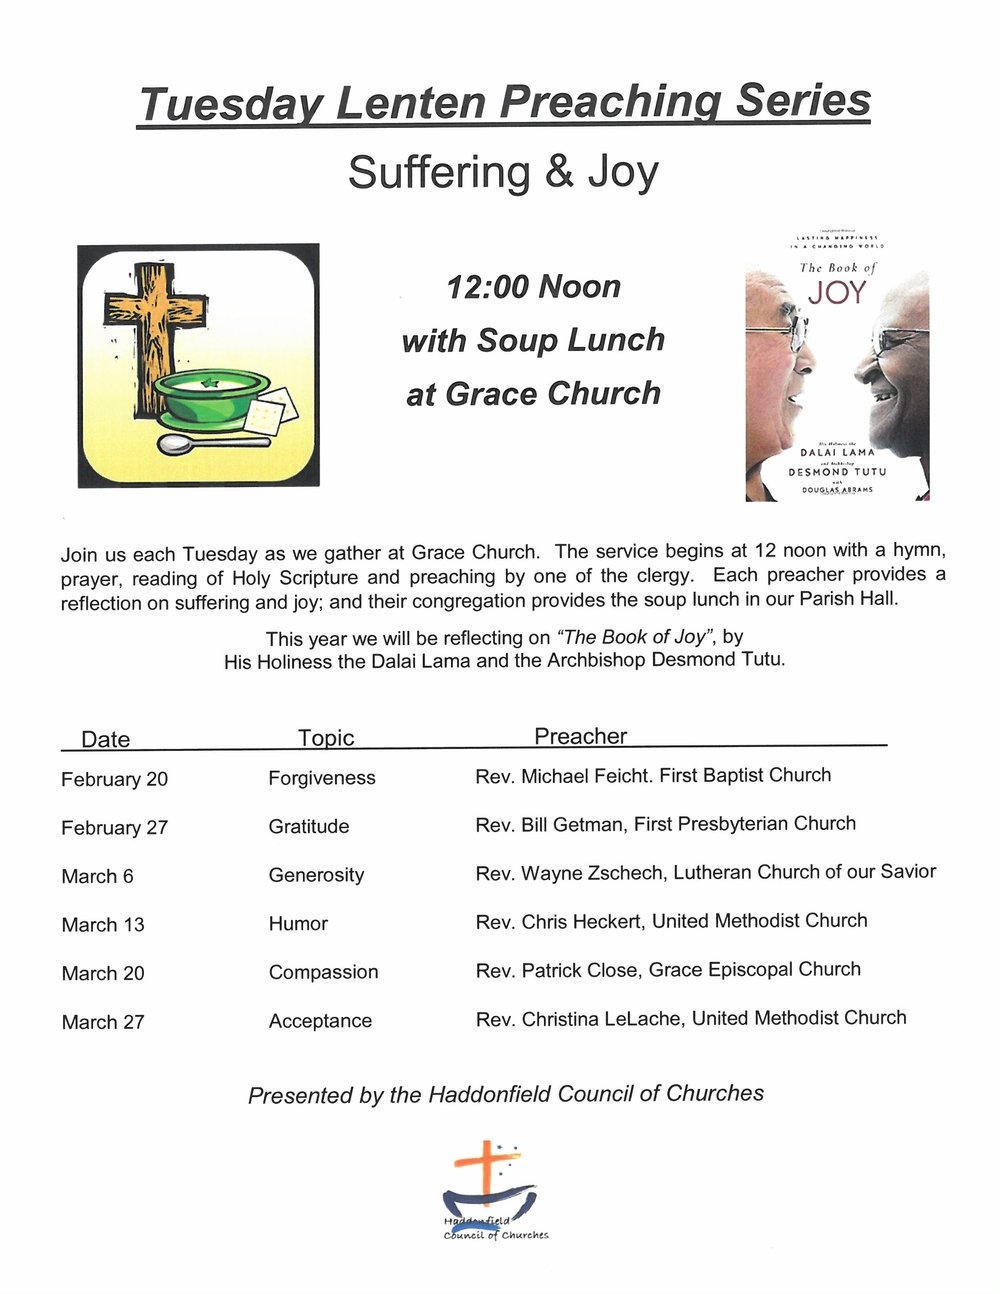 - Beginning Tuesday, February 20, 2018, Grace Church in Haddonfield will host the Haddonfield Council of Churches Lenten Preaching Series and soup lunch. Each week a different member of the Haddonfield clergy will lead the service. Afterwards everyone is invited to the Parish Hall to enjoy a hot soup lunch. This year the clergy will share their reflections on The Book of Joy by His Holiness the Dalai Lama and the Archbishop Desmond Tutu.February 20 - Dr. Rev. Michael Feicht, First Baptist Church in HaddonfieldFebruary 27 - Rev. Bill Getman, First Presbyterian Church in HaddonfieldMarch 6 - Rev. Wayne Zschech, Our Savior Lutheran ChurchMarch 13 - Rev. Chris Heckert, Haddonfield United Methodist ChurchMarch 20 - Dr. Rev. Patrick Close, Grace Church in HaddonfieldMarch 27 - Rev. Christina Lelache, Haddonfield United Methodist ChurchFor more information about the series, contact the Grace Church in Haddonfield office.